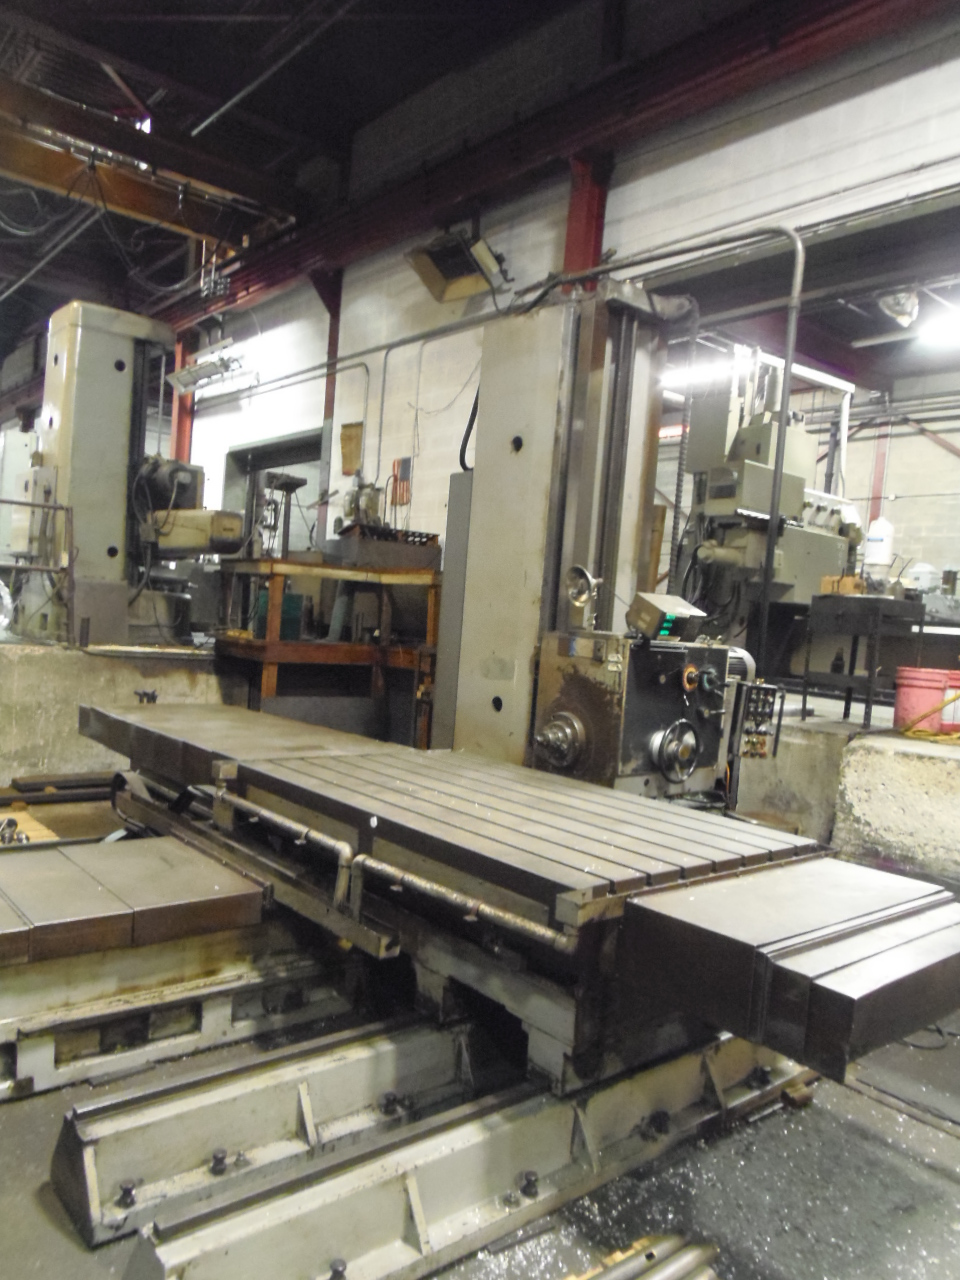 "4.3"" KURAKI  MODEL KBT-1101P, 84"" X 59"" X 72"" X 31""  TRAVELS, 12-1200 RPM, 49"" X 78"" TABLE, 1979"